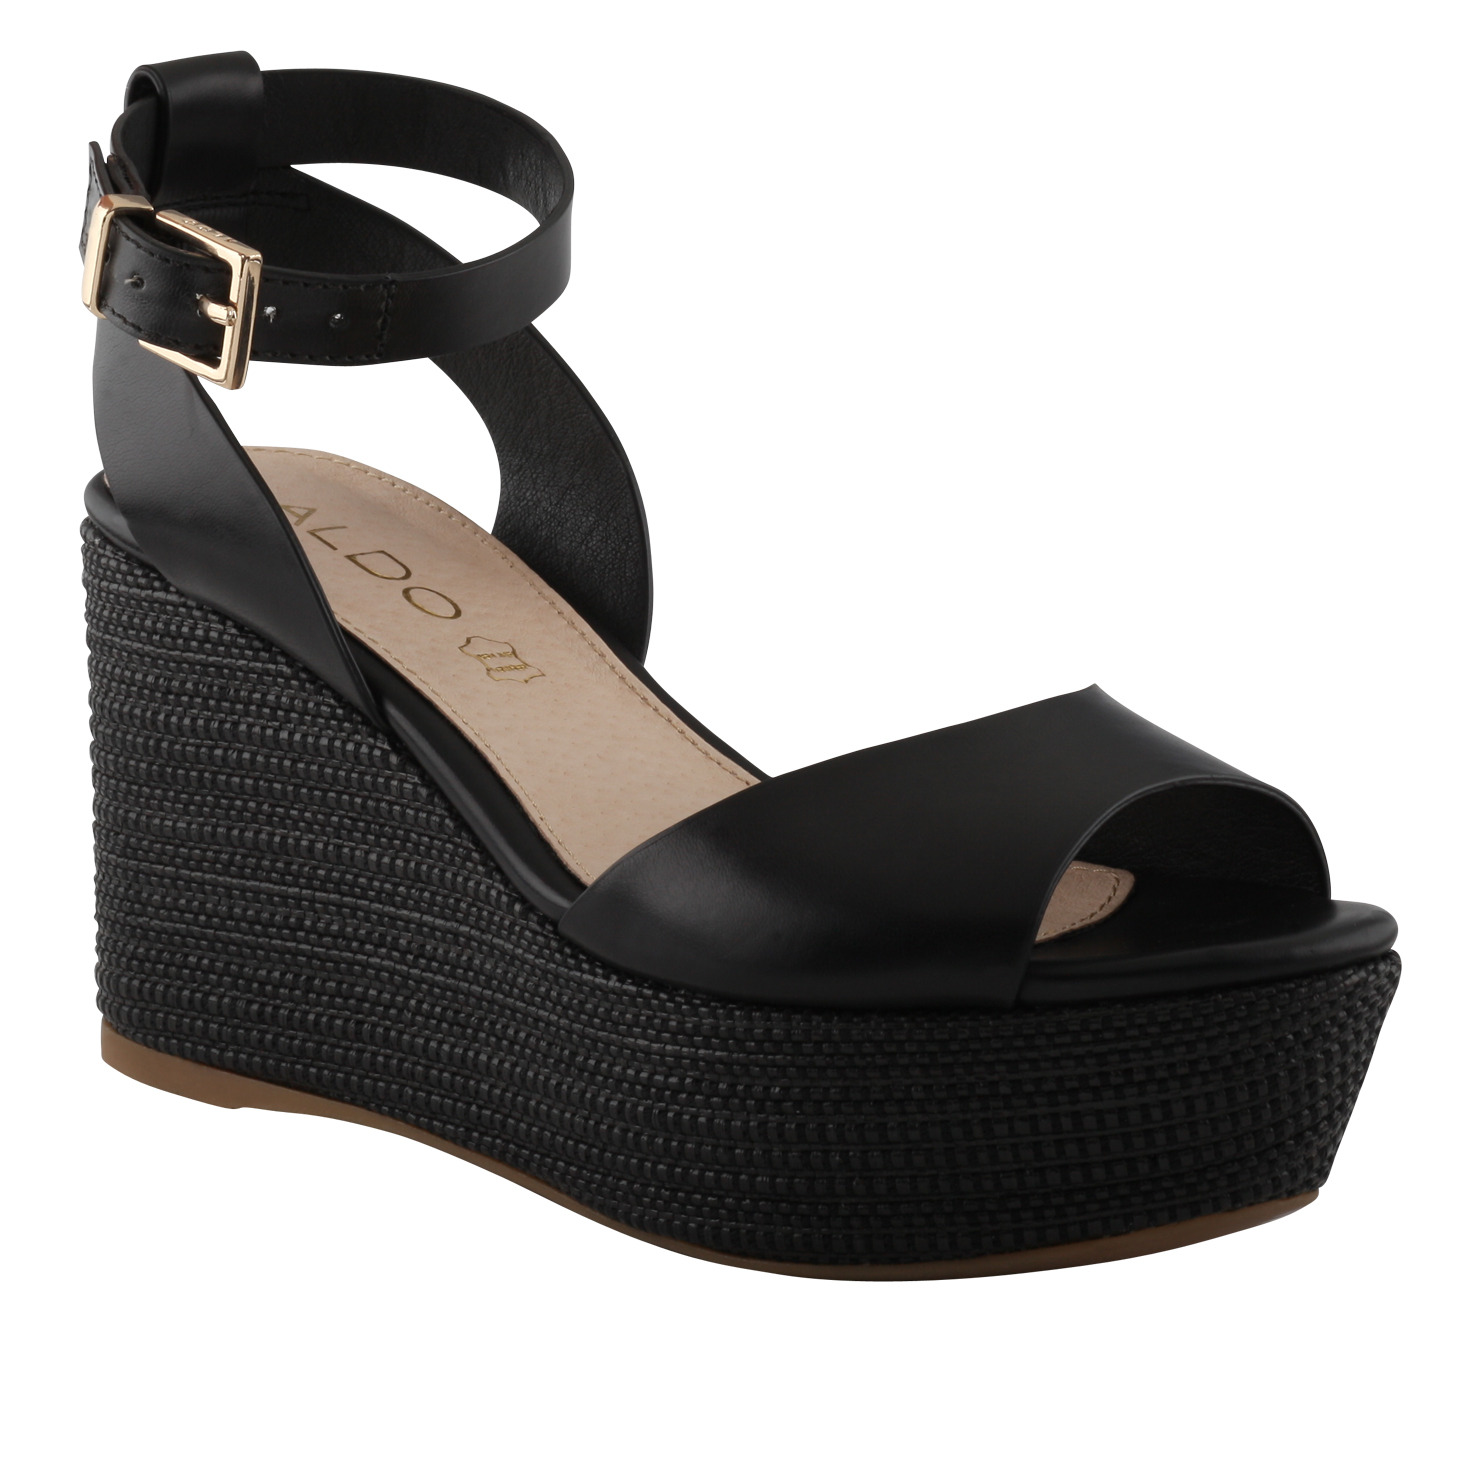 Lyst - ALDO Taipa Wedge Sandals in Black